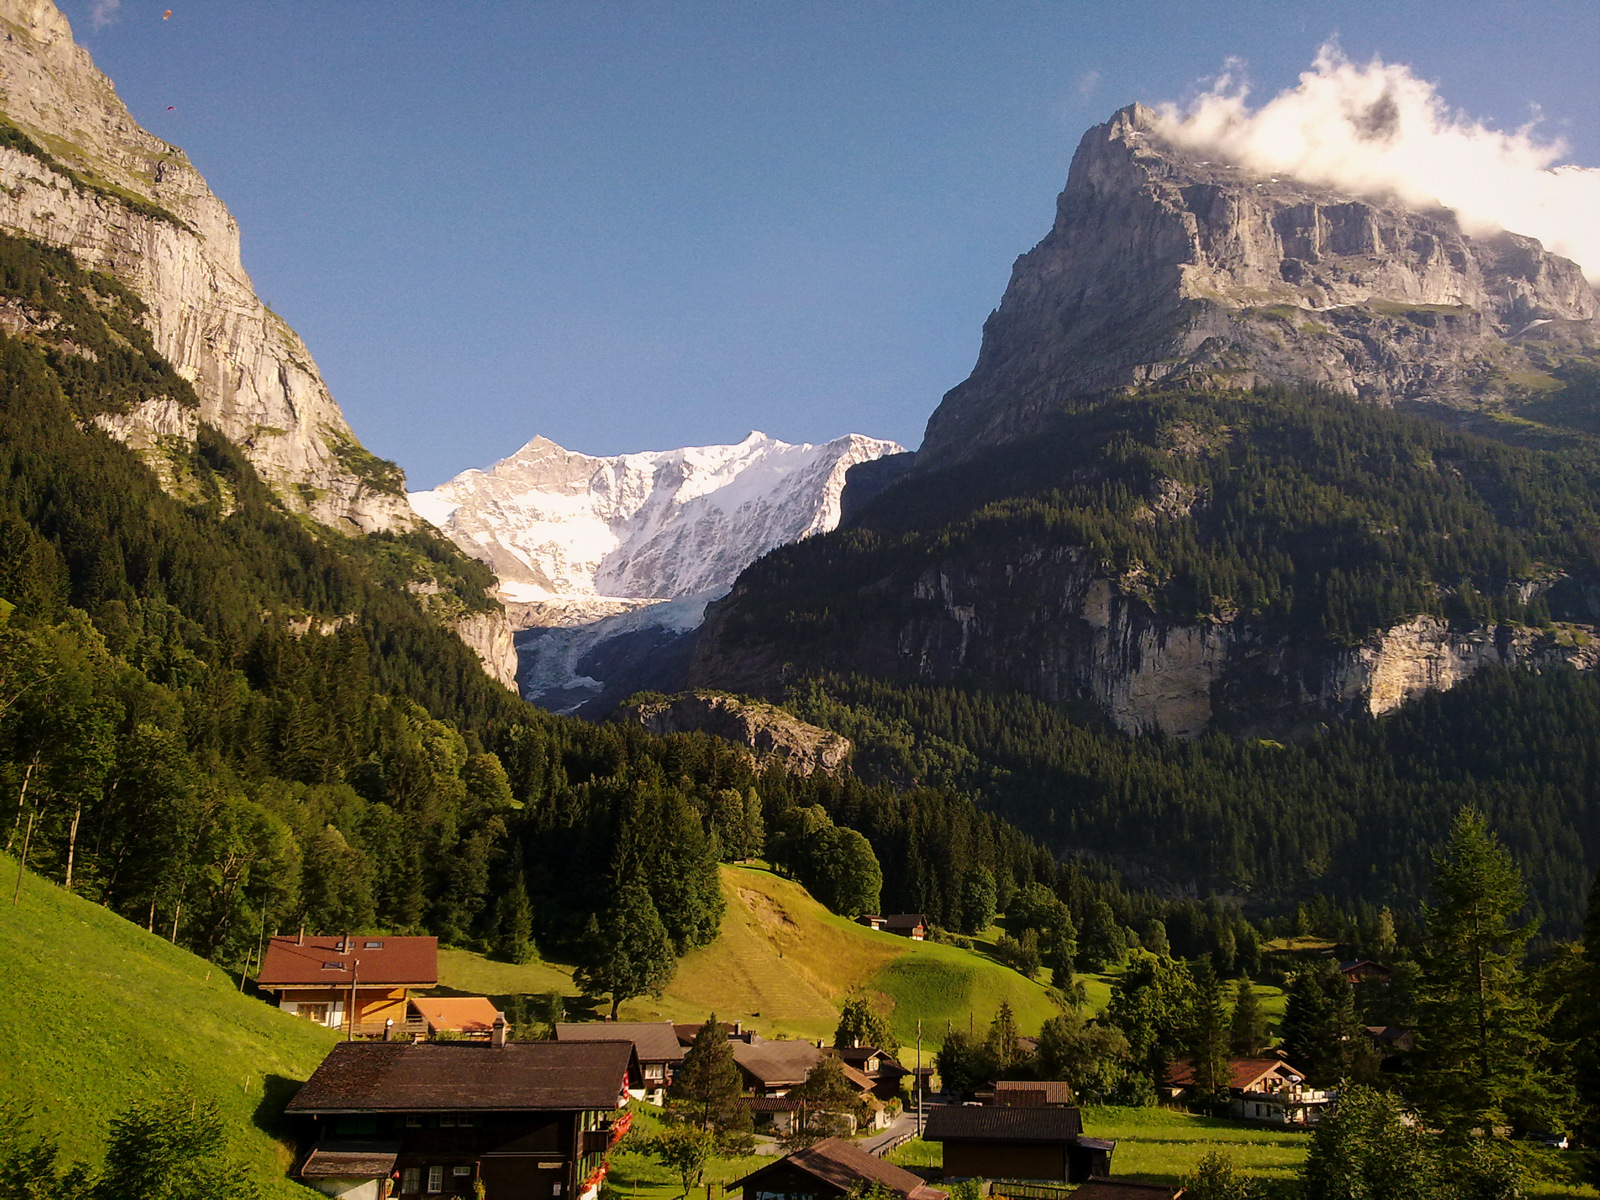 https://upload.wikimedia.org/wikipedia/commons/b/ba/Grindelwald_View_02.jpg